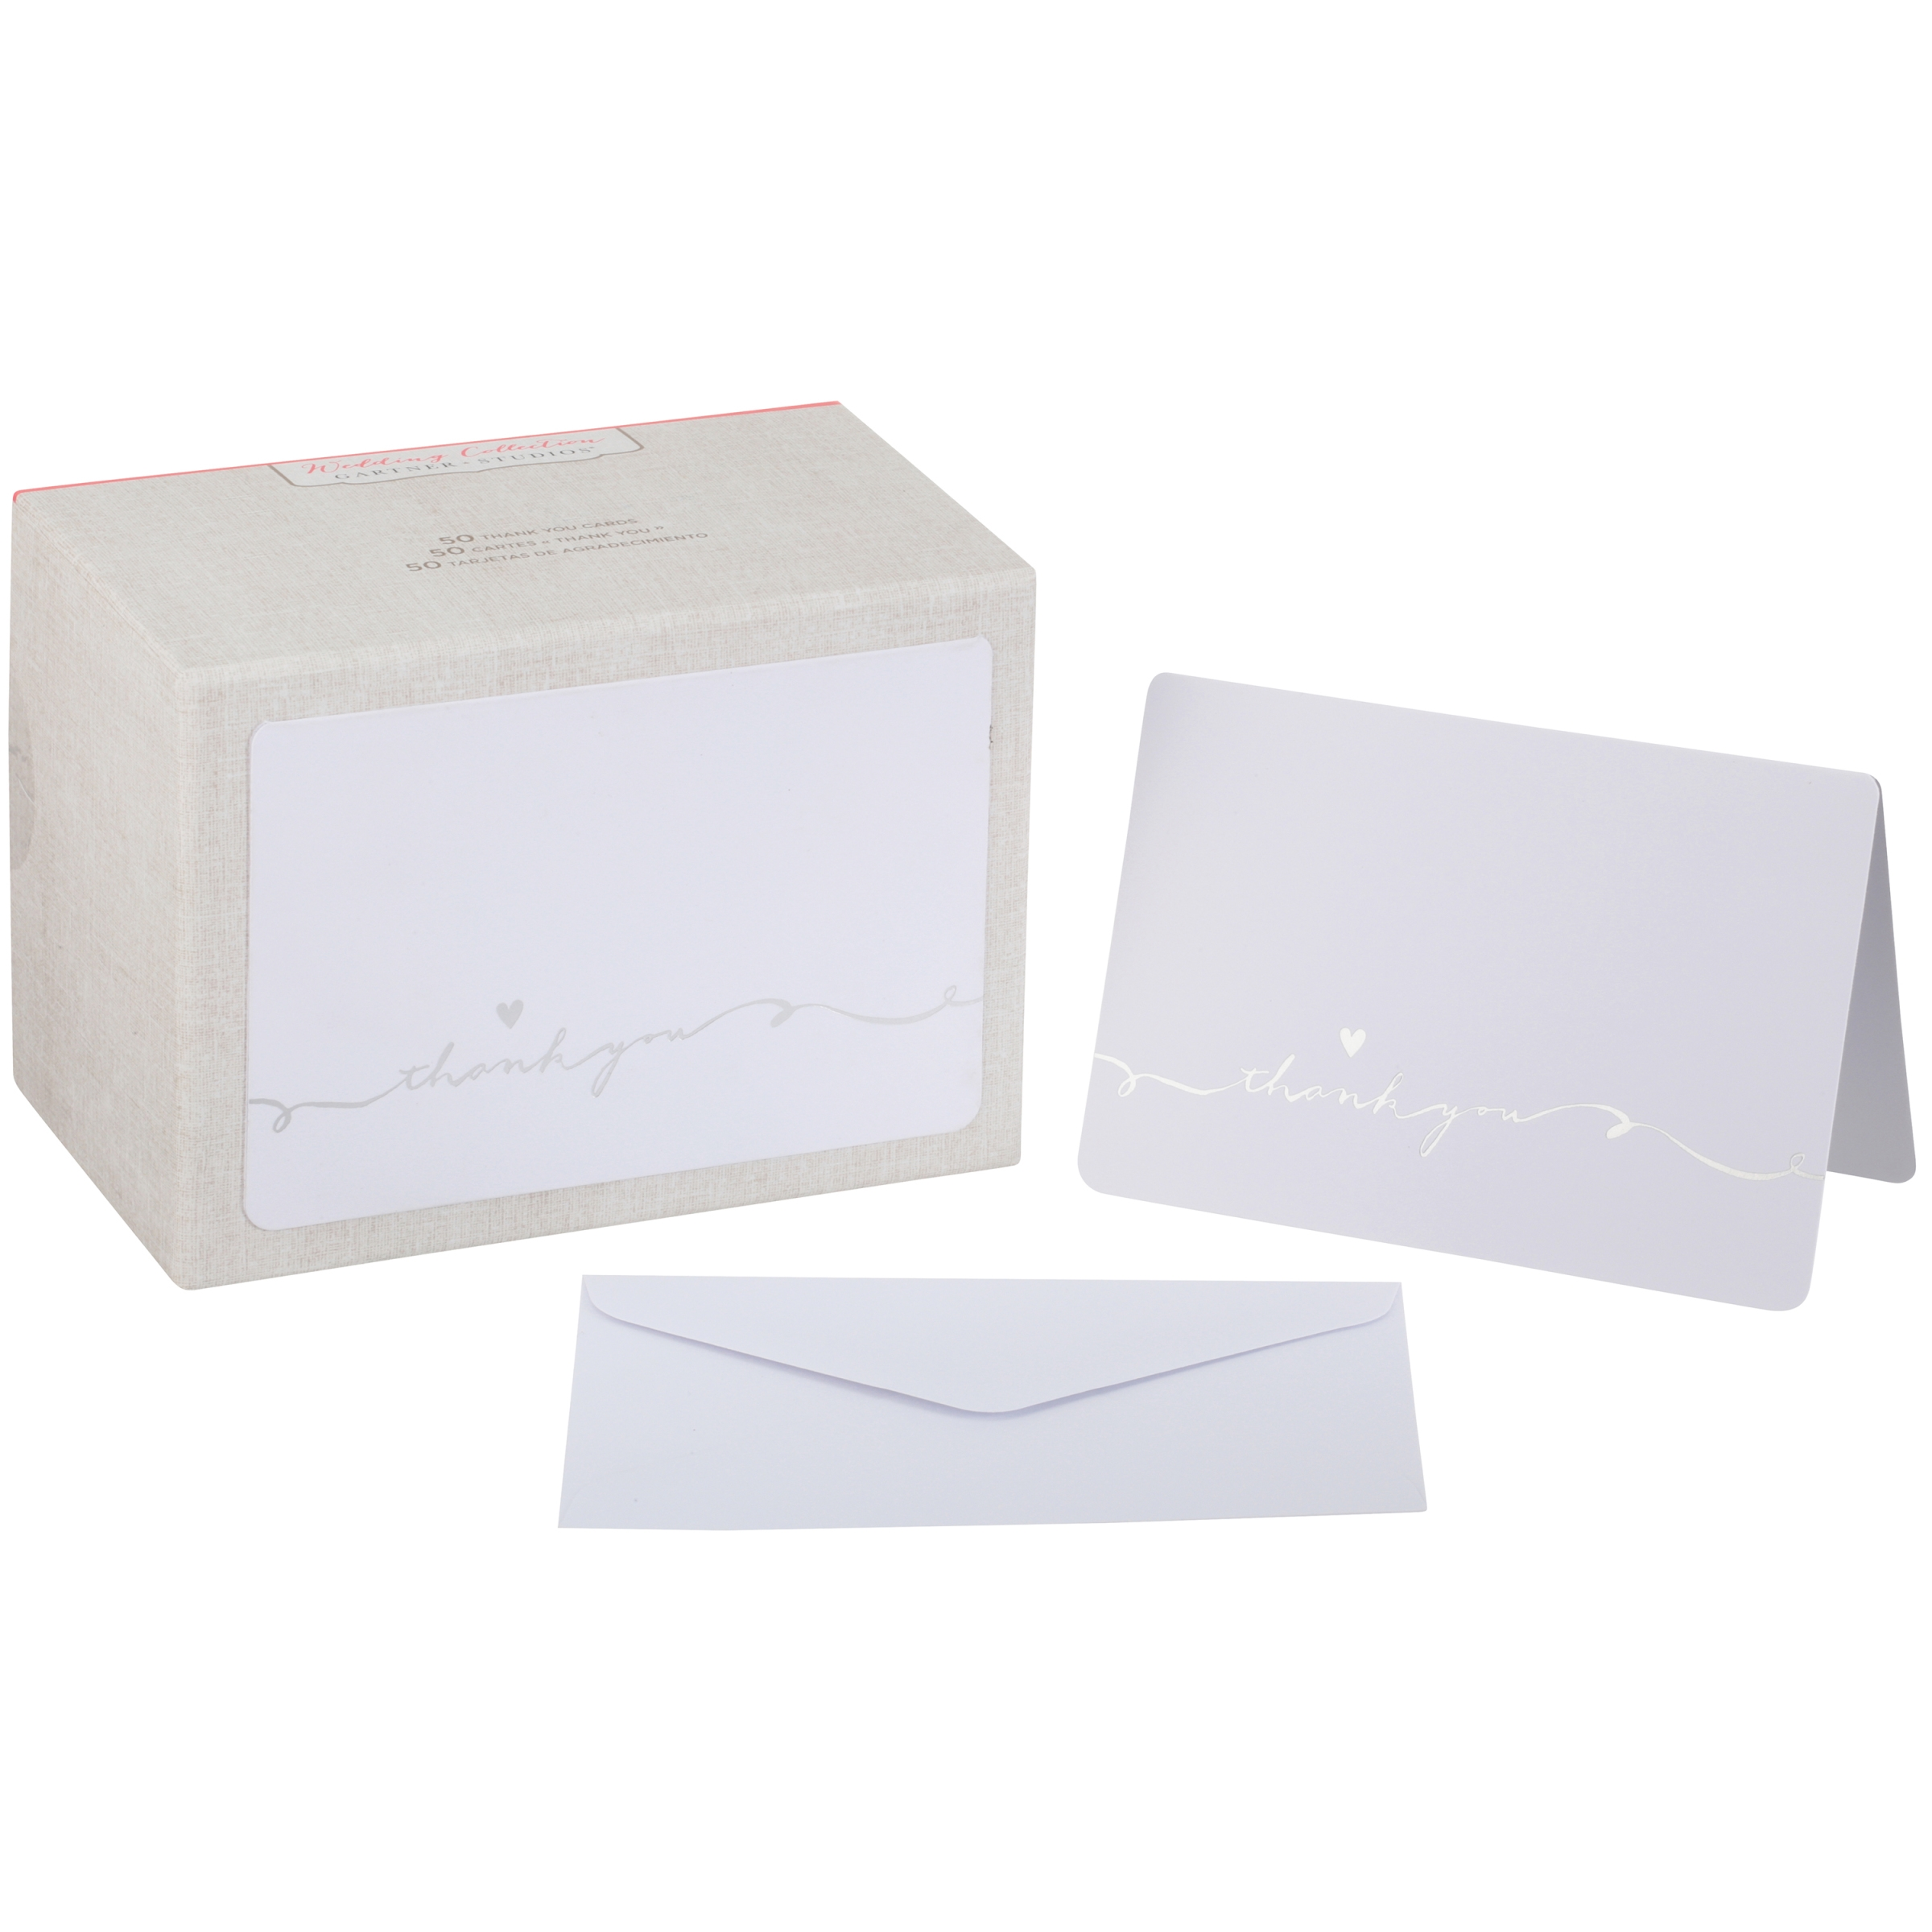 Gartner Studios® Thank You Cards 50 ct Box